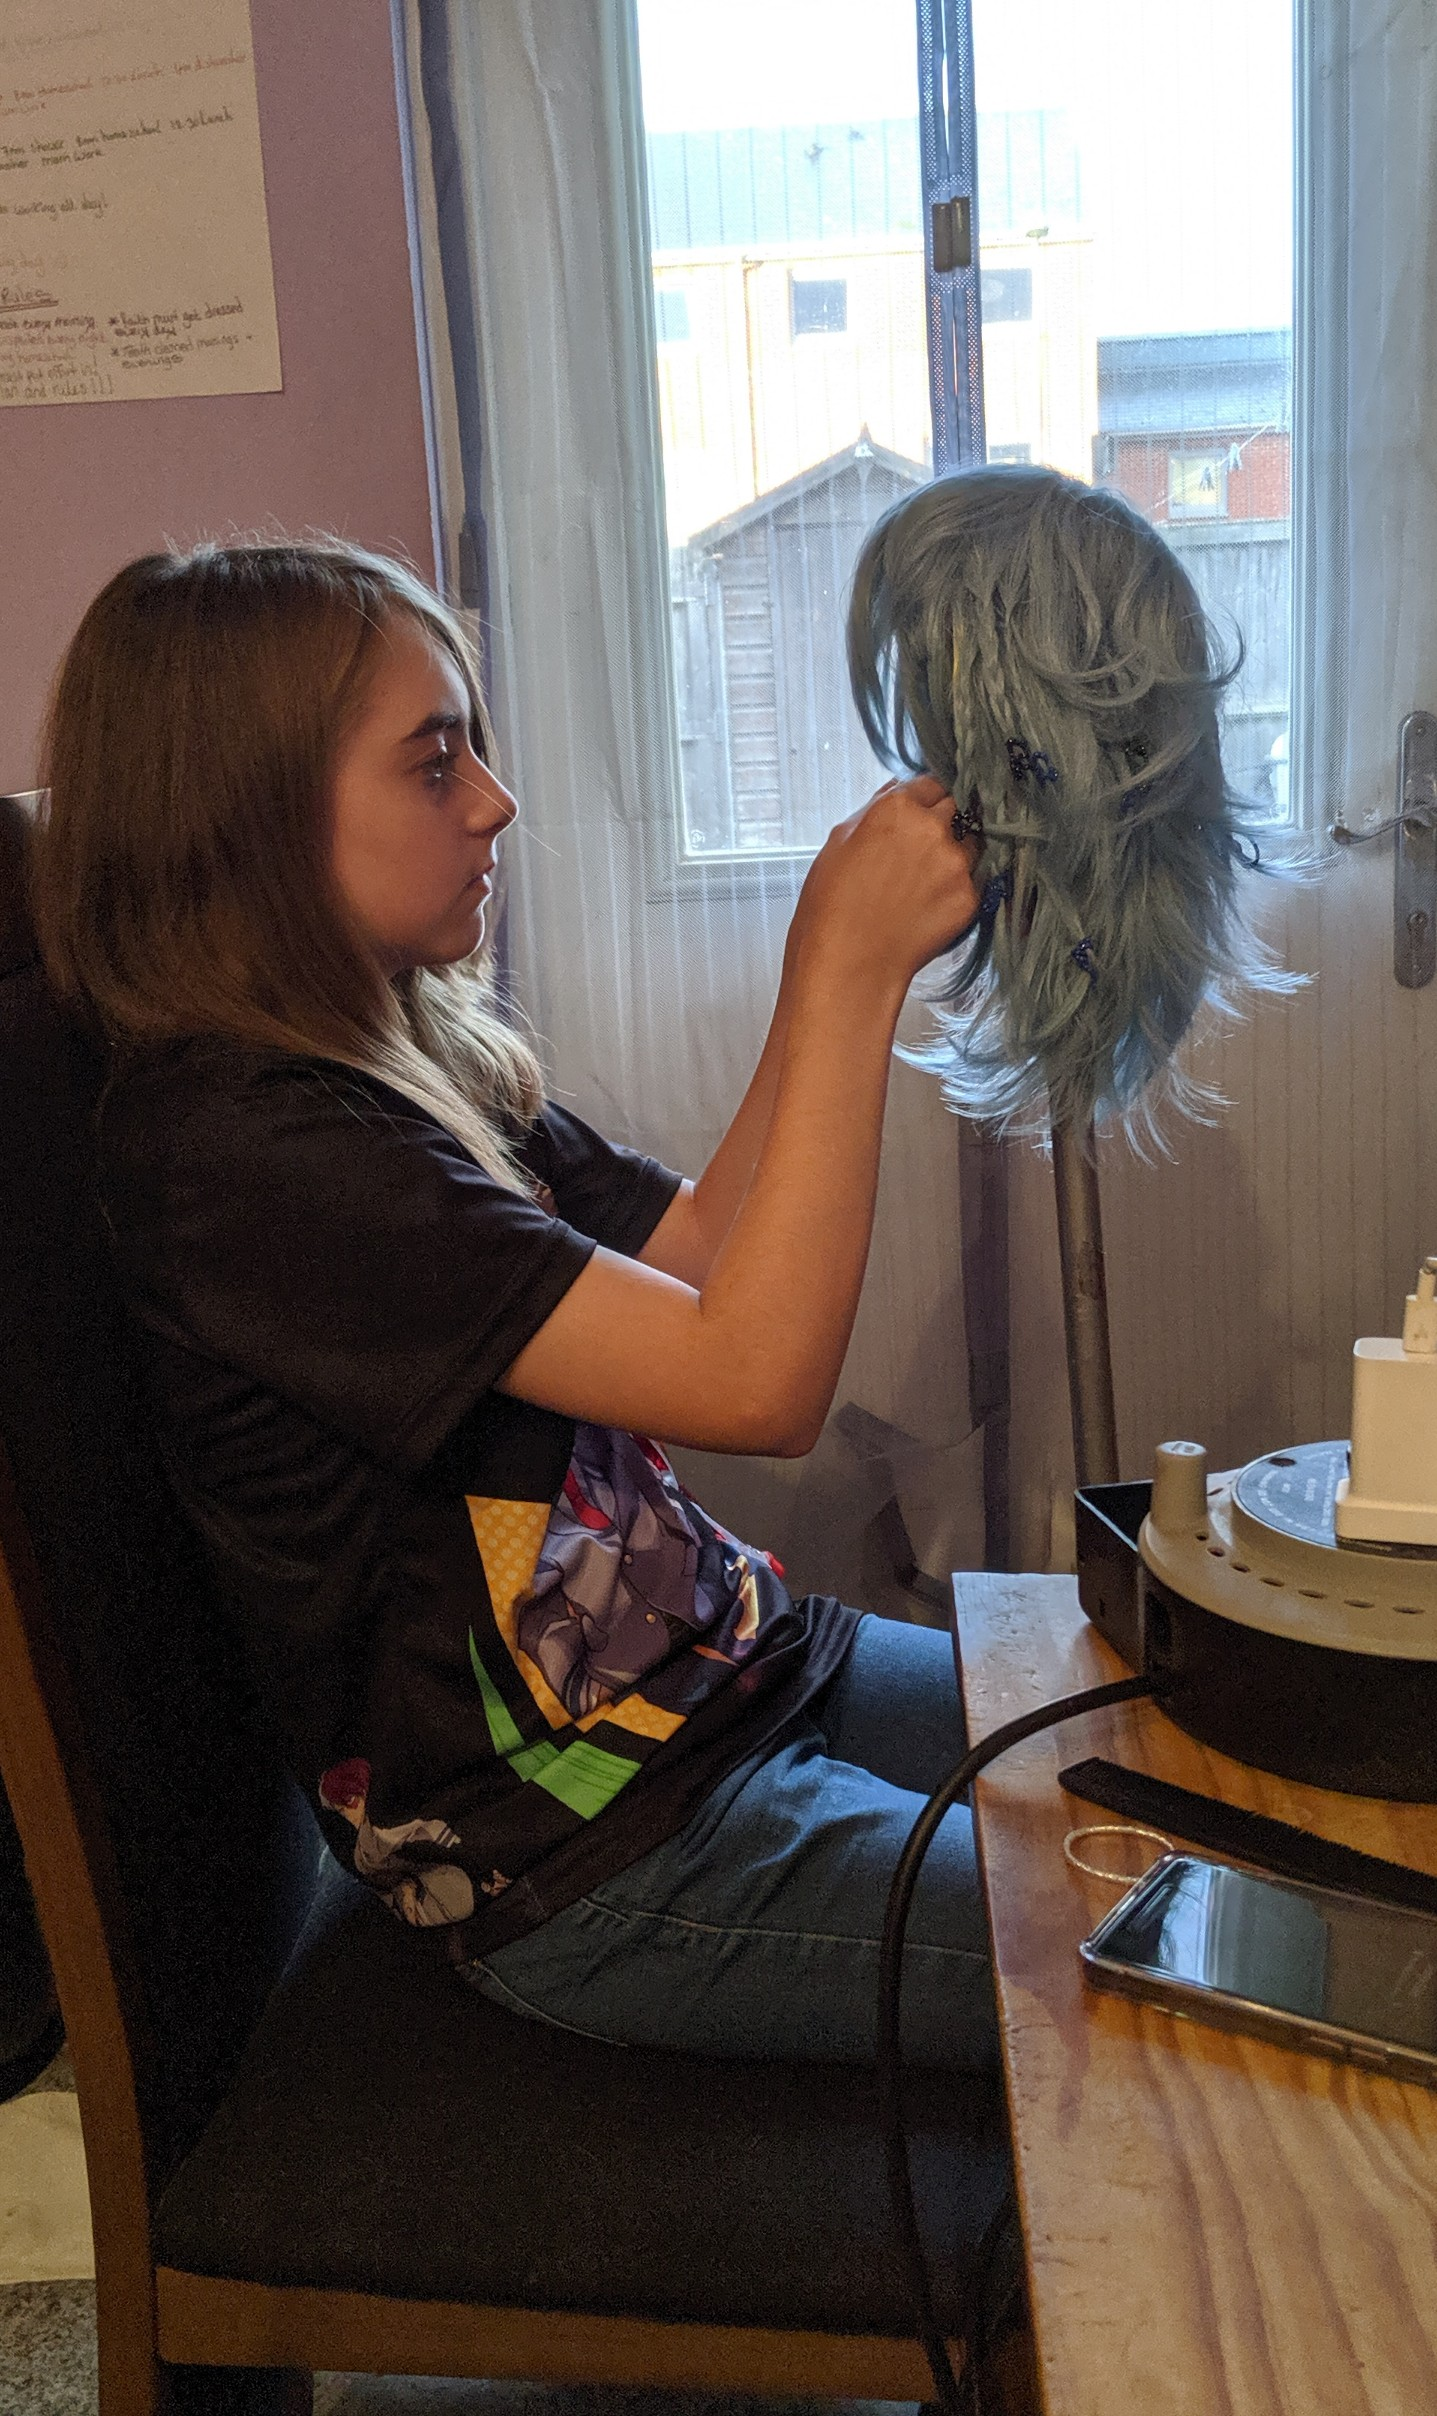 Faith styling her wig at the kitchen table